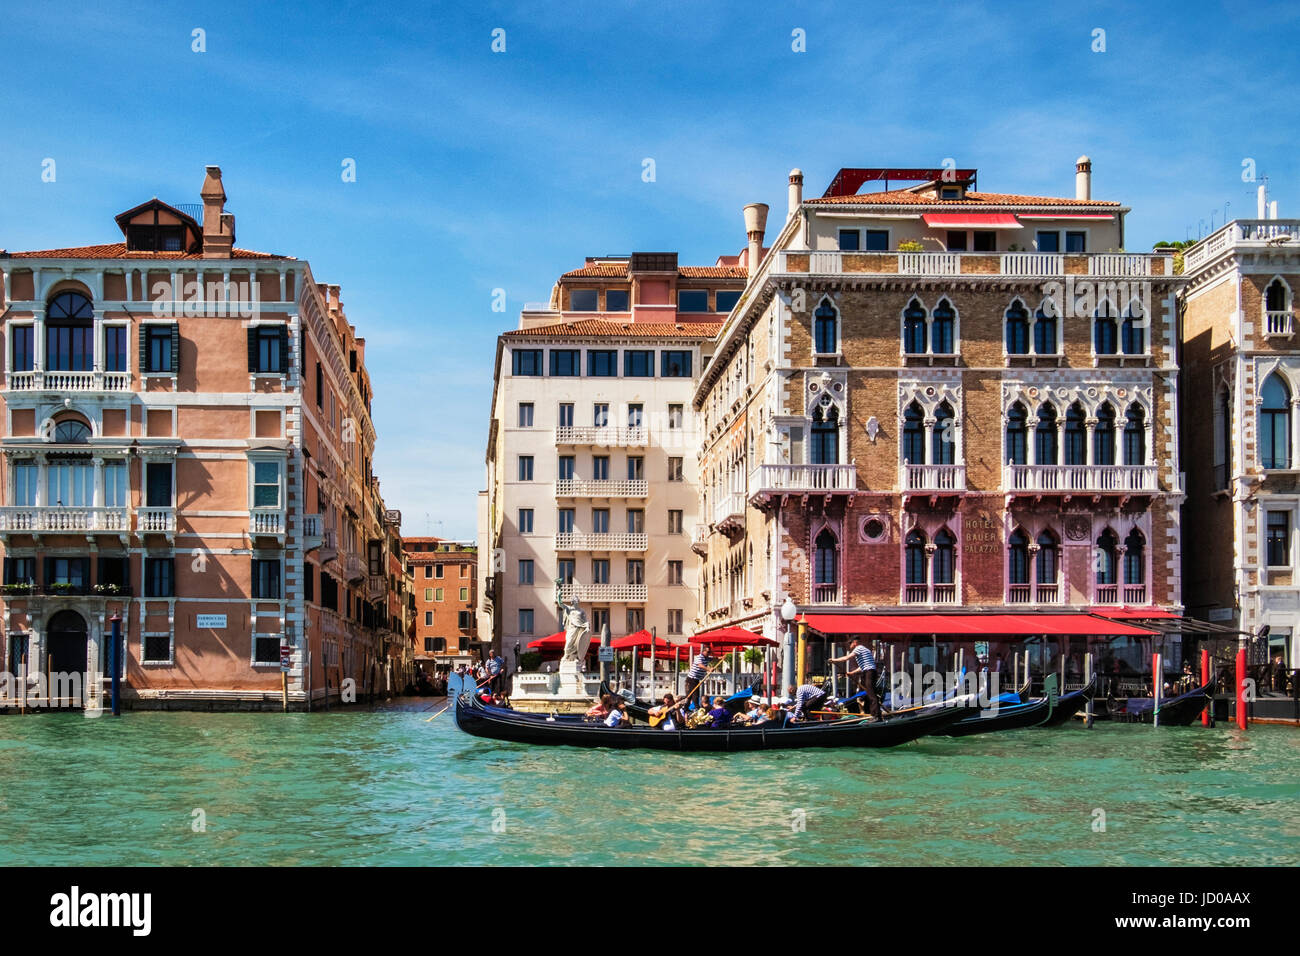 Venice Italy Hotel Bauer 5 Star Luxury Hotel In Elegant Old Palazzo